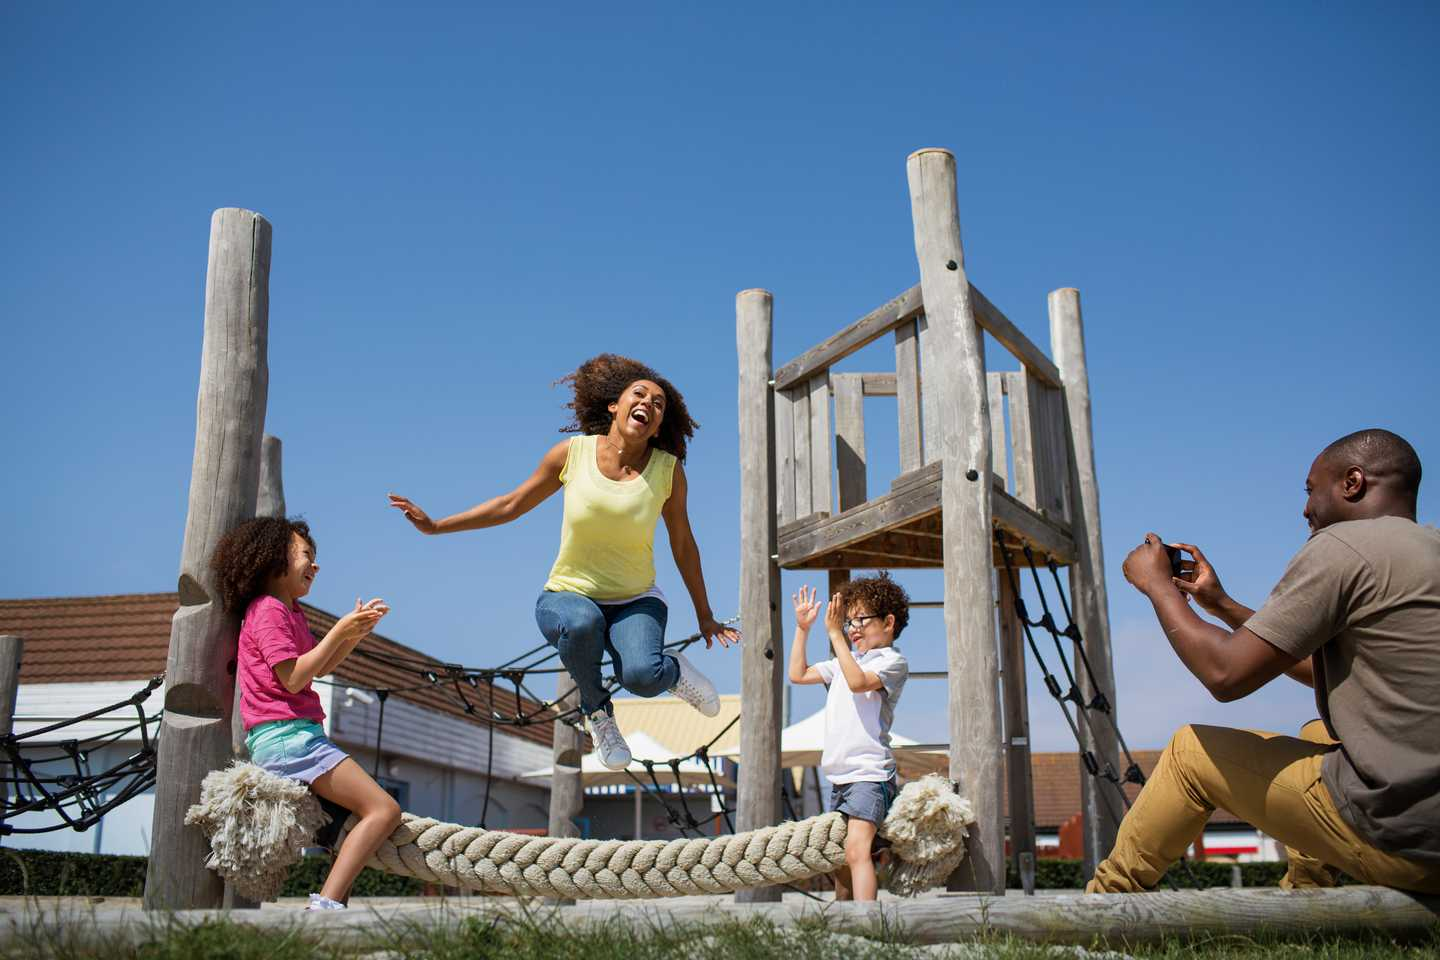 A child playing in the outdoor play area